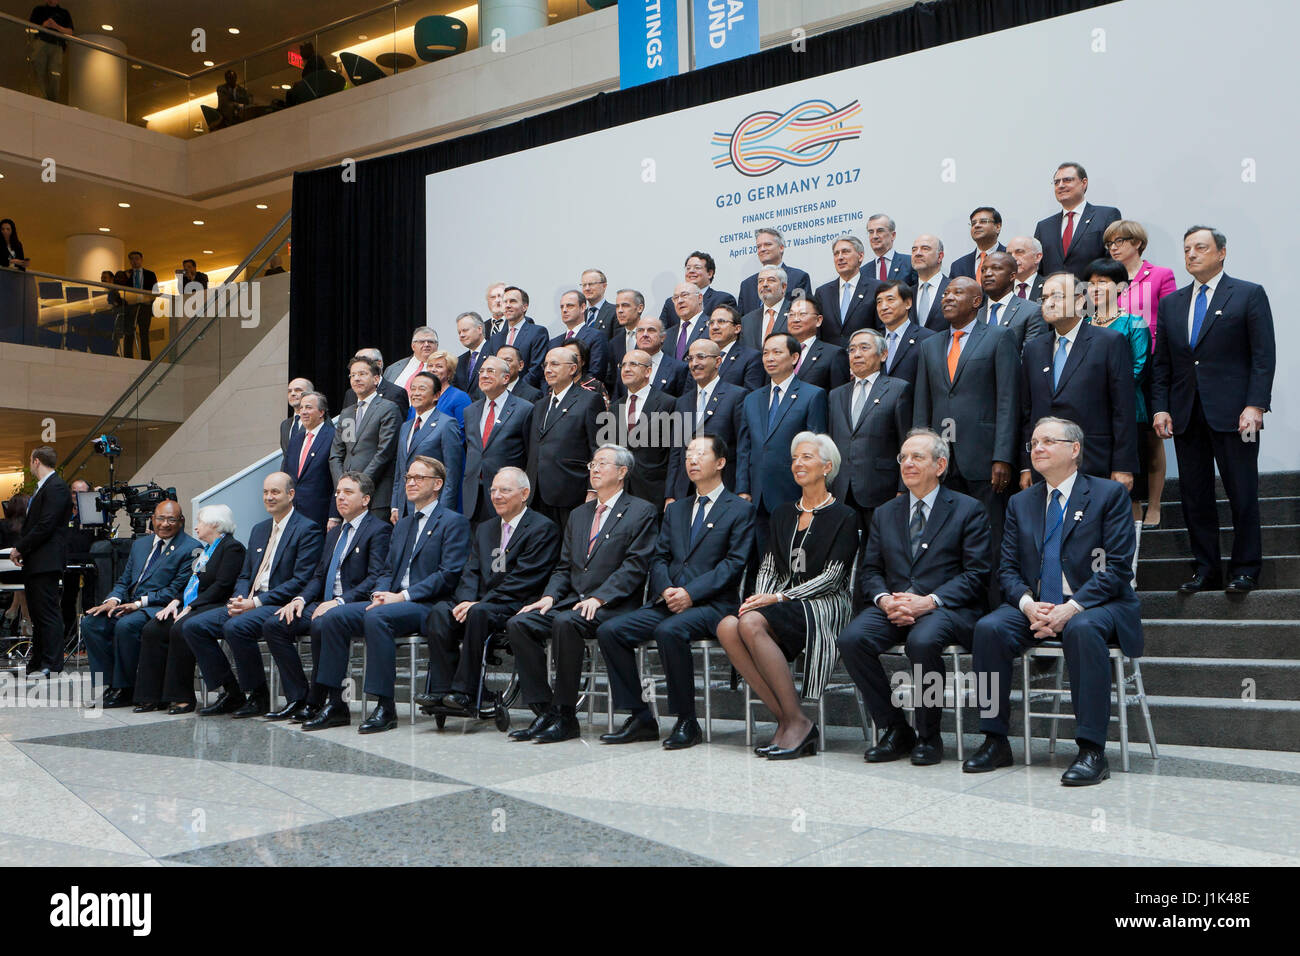 Washington, USA, 21st Apr. 2017:  G20 Finance Ministers and Central Bank Governors pose for a photo after meeting - Stock Image